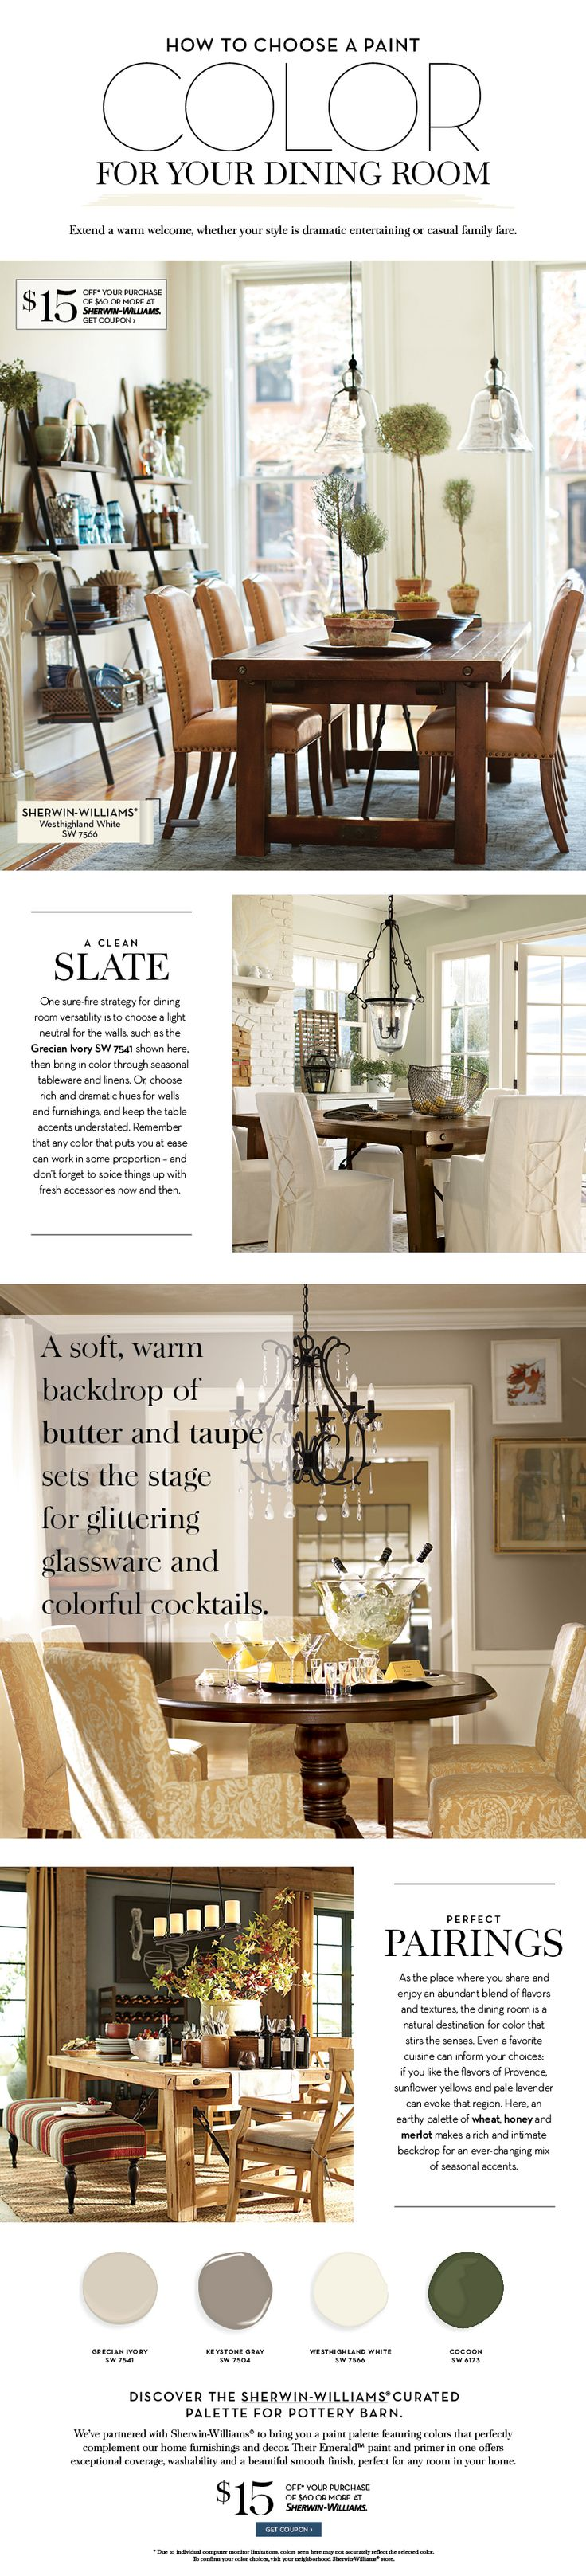 1000 Images About Painting On Pinterest Paint Colors Revere Pewter And Gr